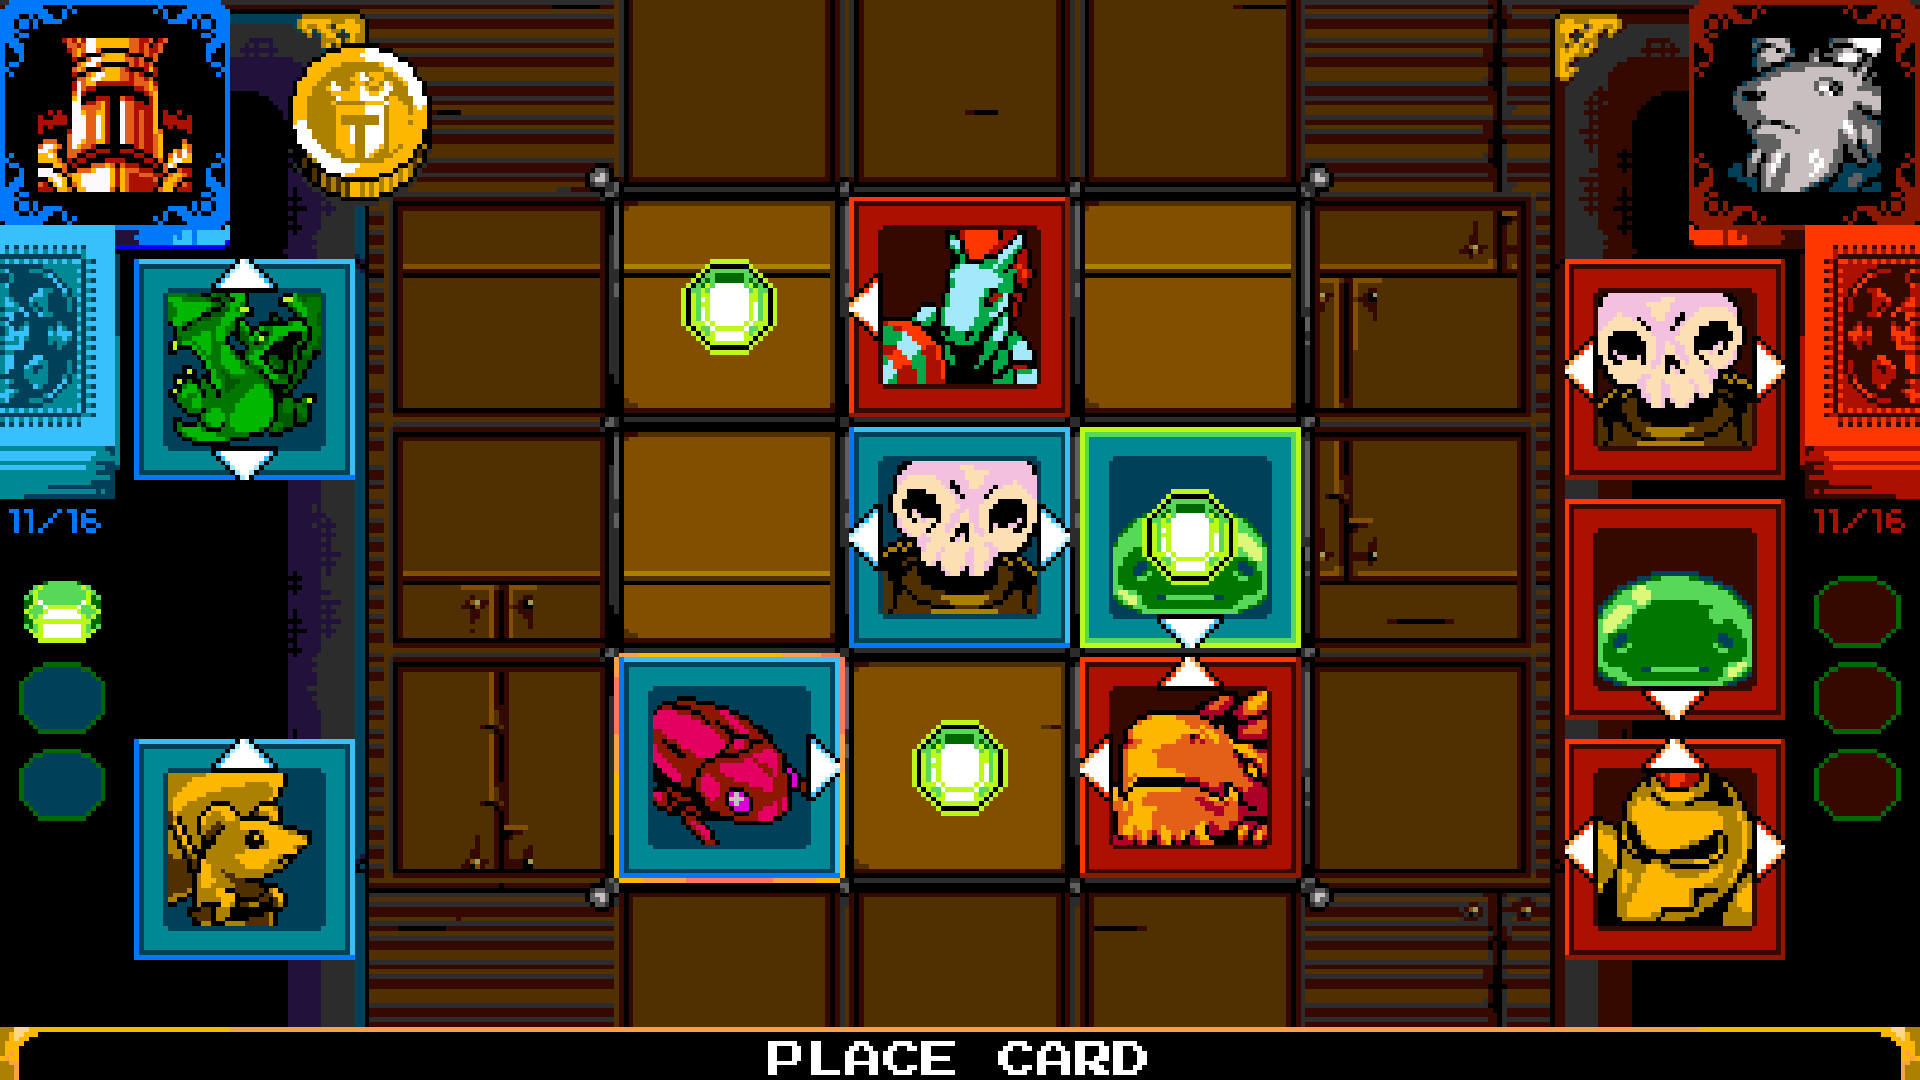 A screenshot from Joustus, the card game.